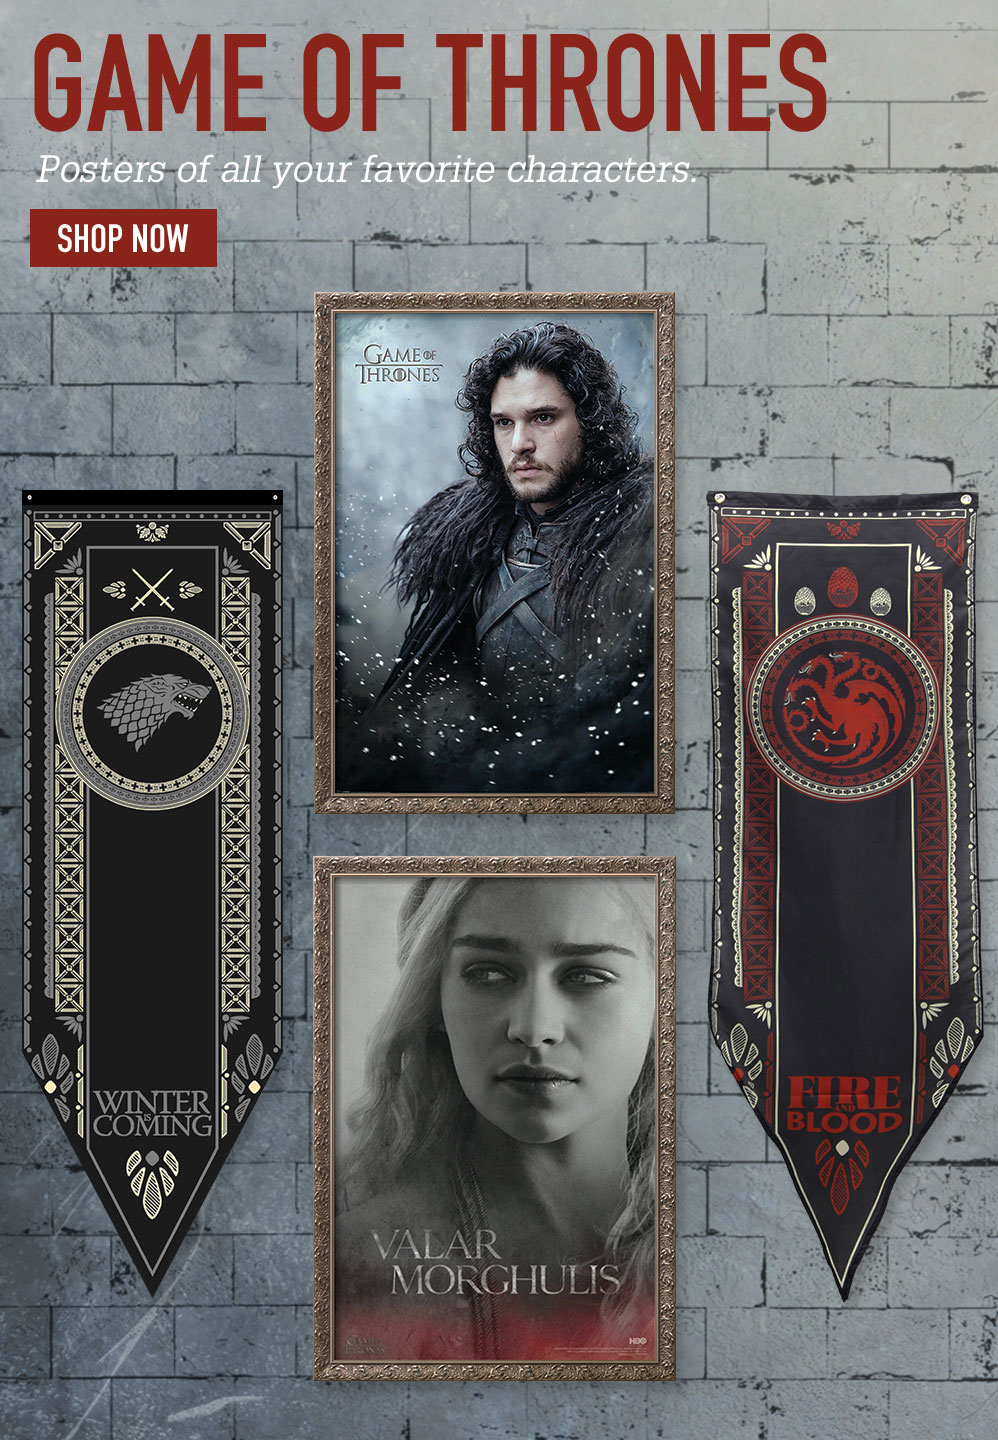 GAME OF THRONES. Posters of all your favorite characters. SHOP NOW